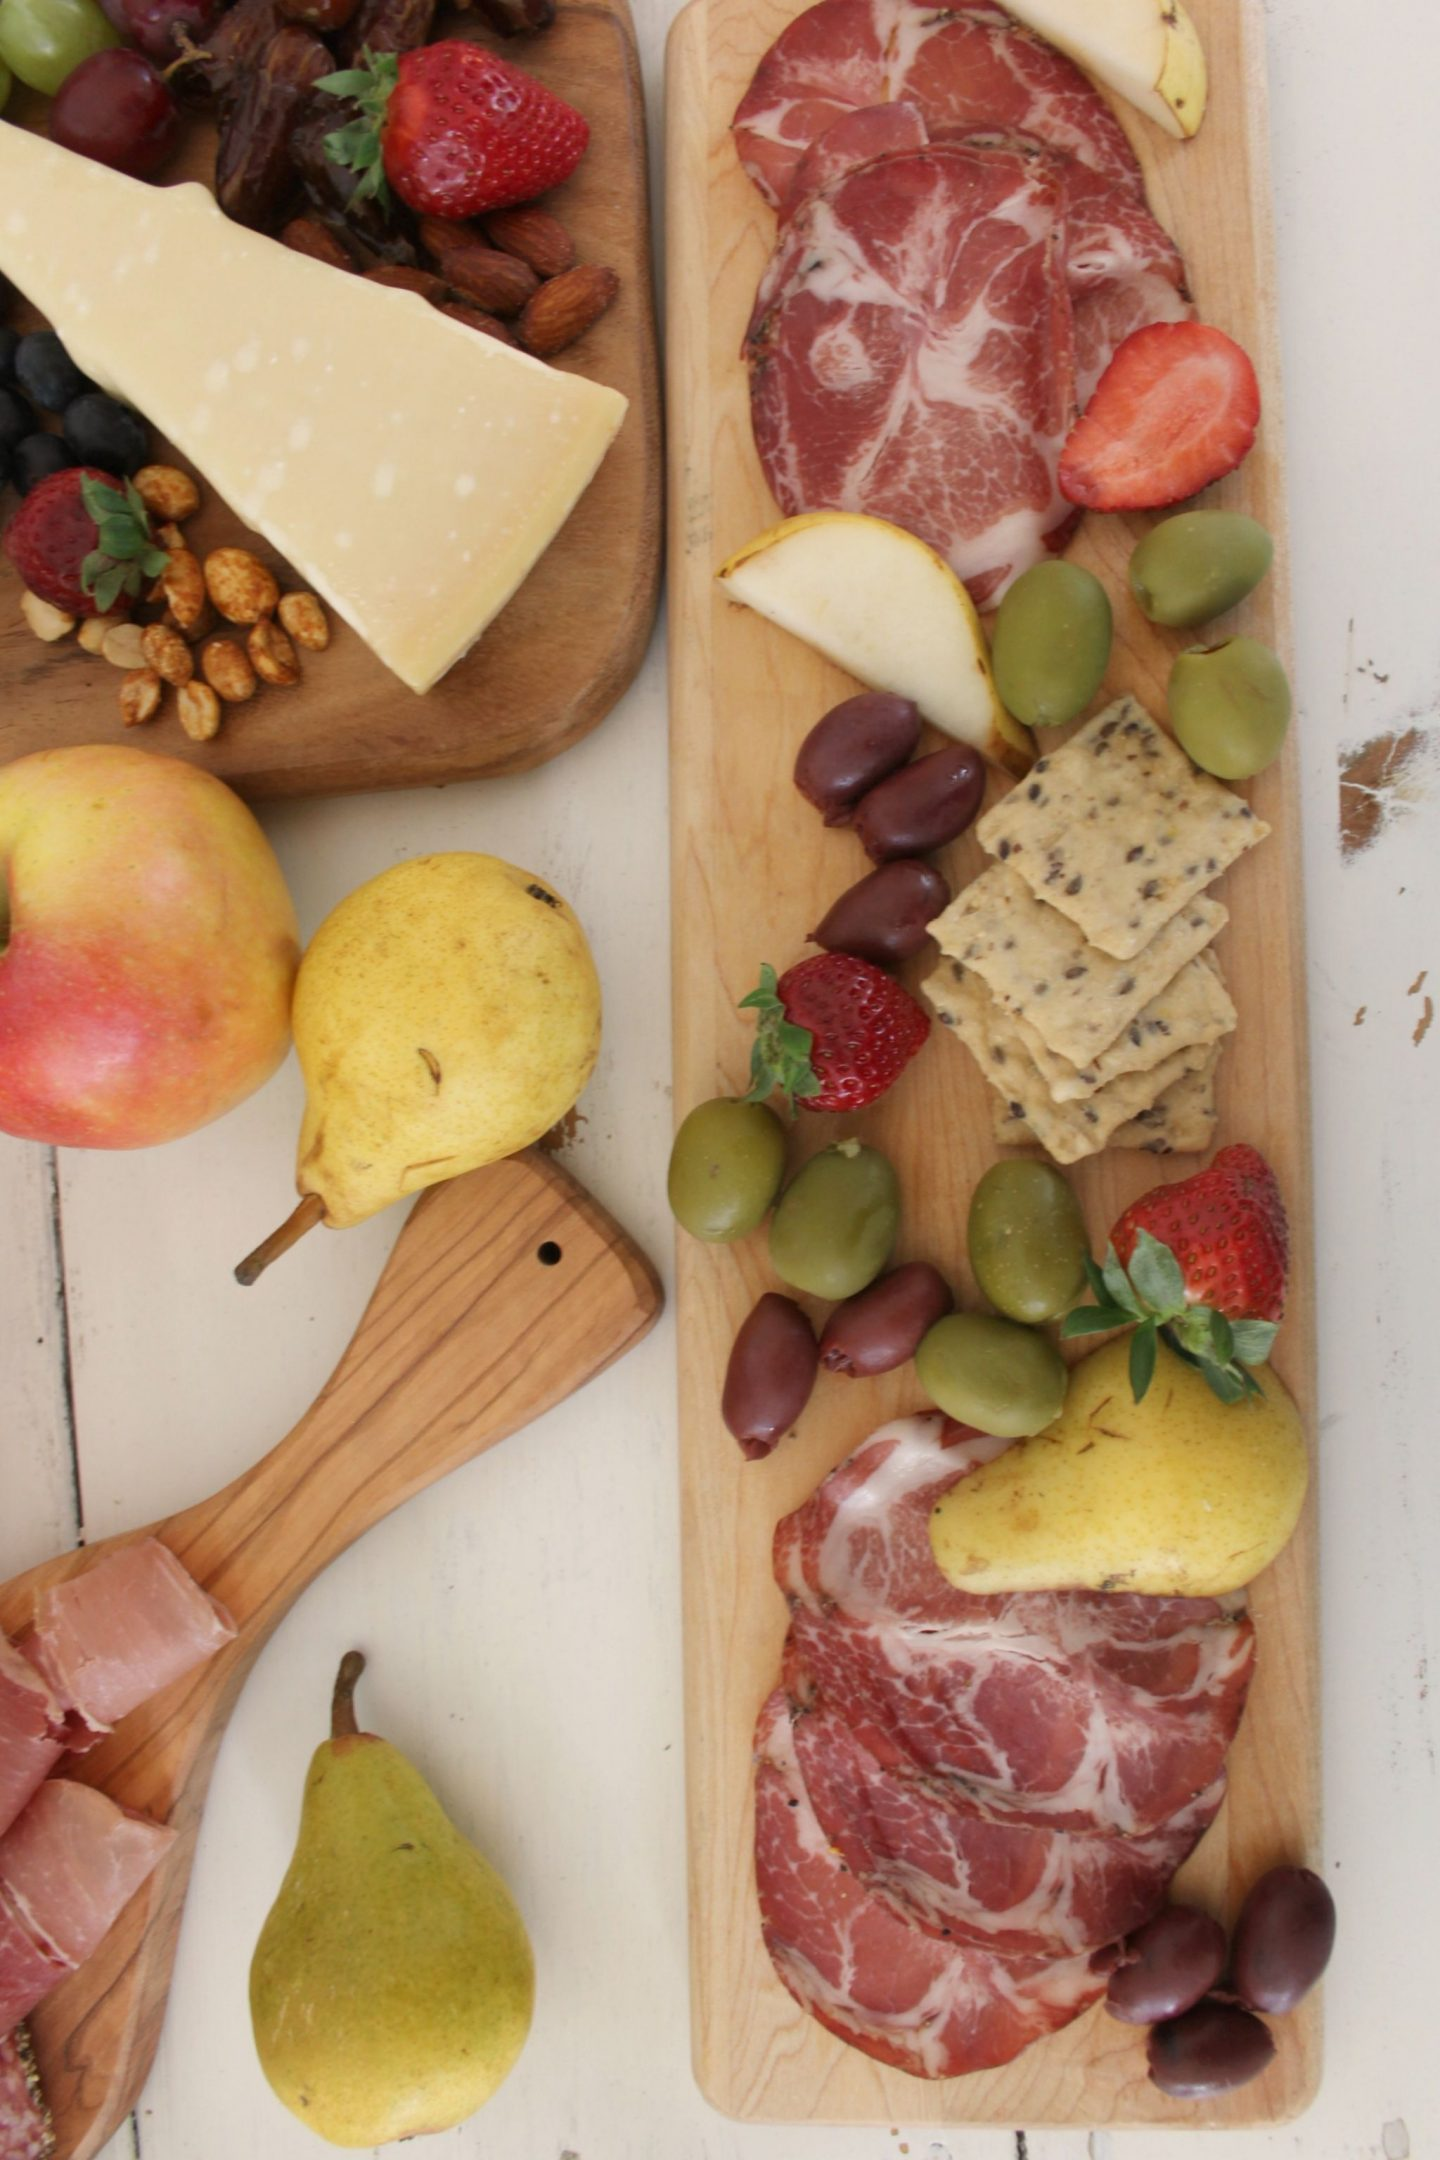 Come be inspired by these colorful cheeseboards, graze boards and charcuterie styled on a white farmhouse table in my home - Hello Lovely Studio. FALL In Love With Autumn: Pre-PEAR Yourself for Yummy Pear Inspiration Ahead!